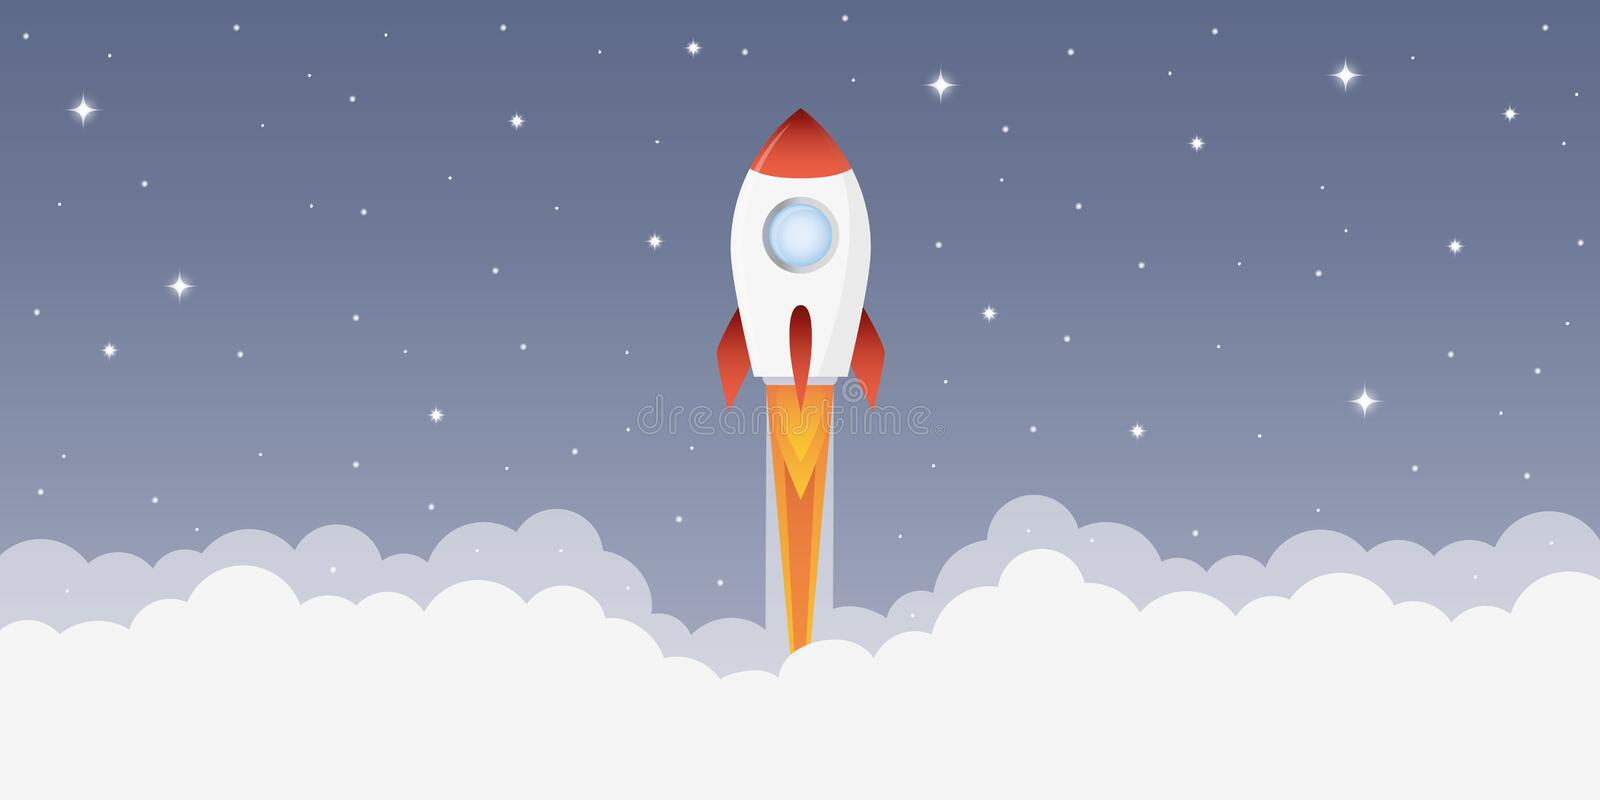 Rocket launch into space with starry sky vector illustration